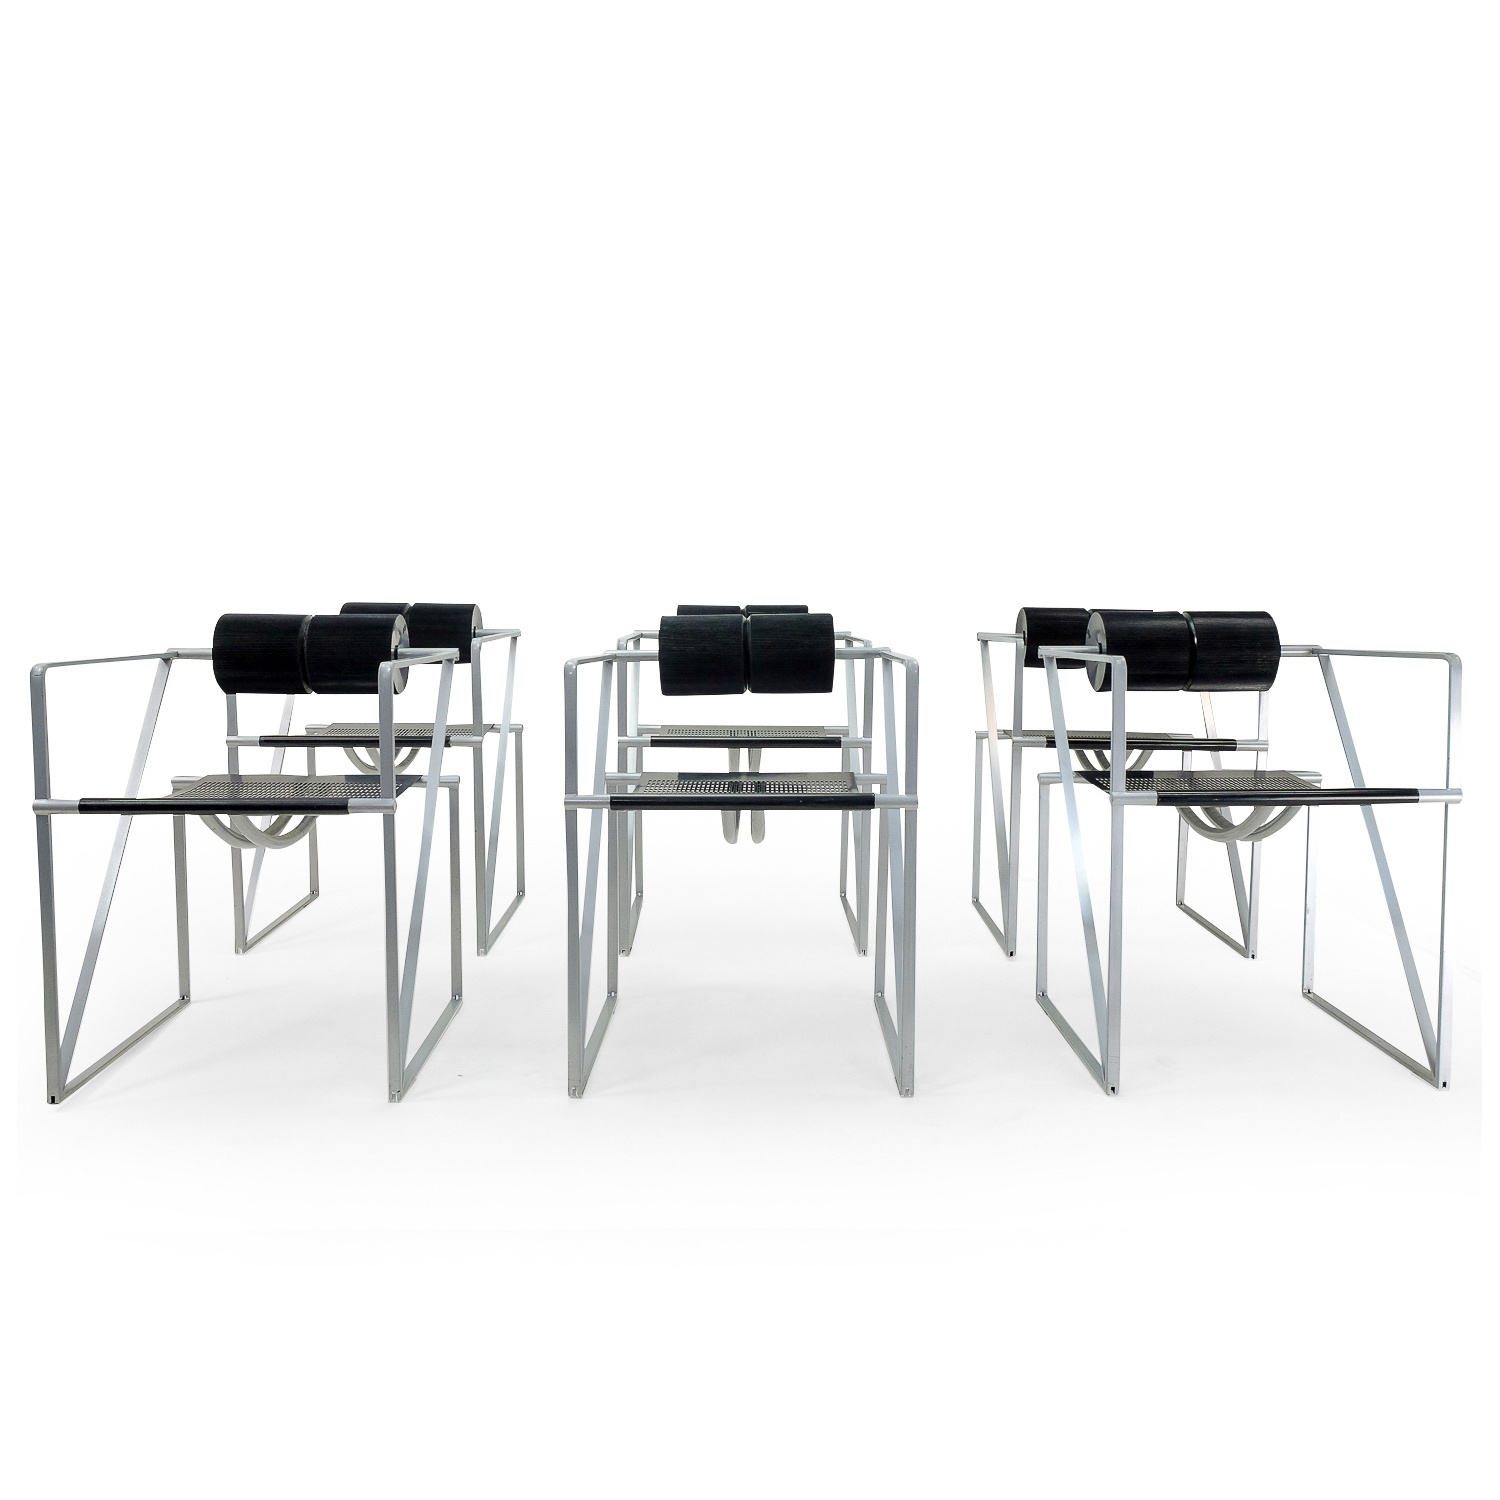 Vintage Seconda Chairs by Mario Botta, set of 6. 1980s Mobilier Vintage Design, Suisse Romande